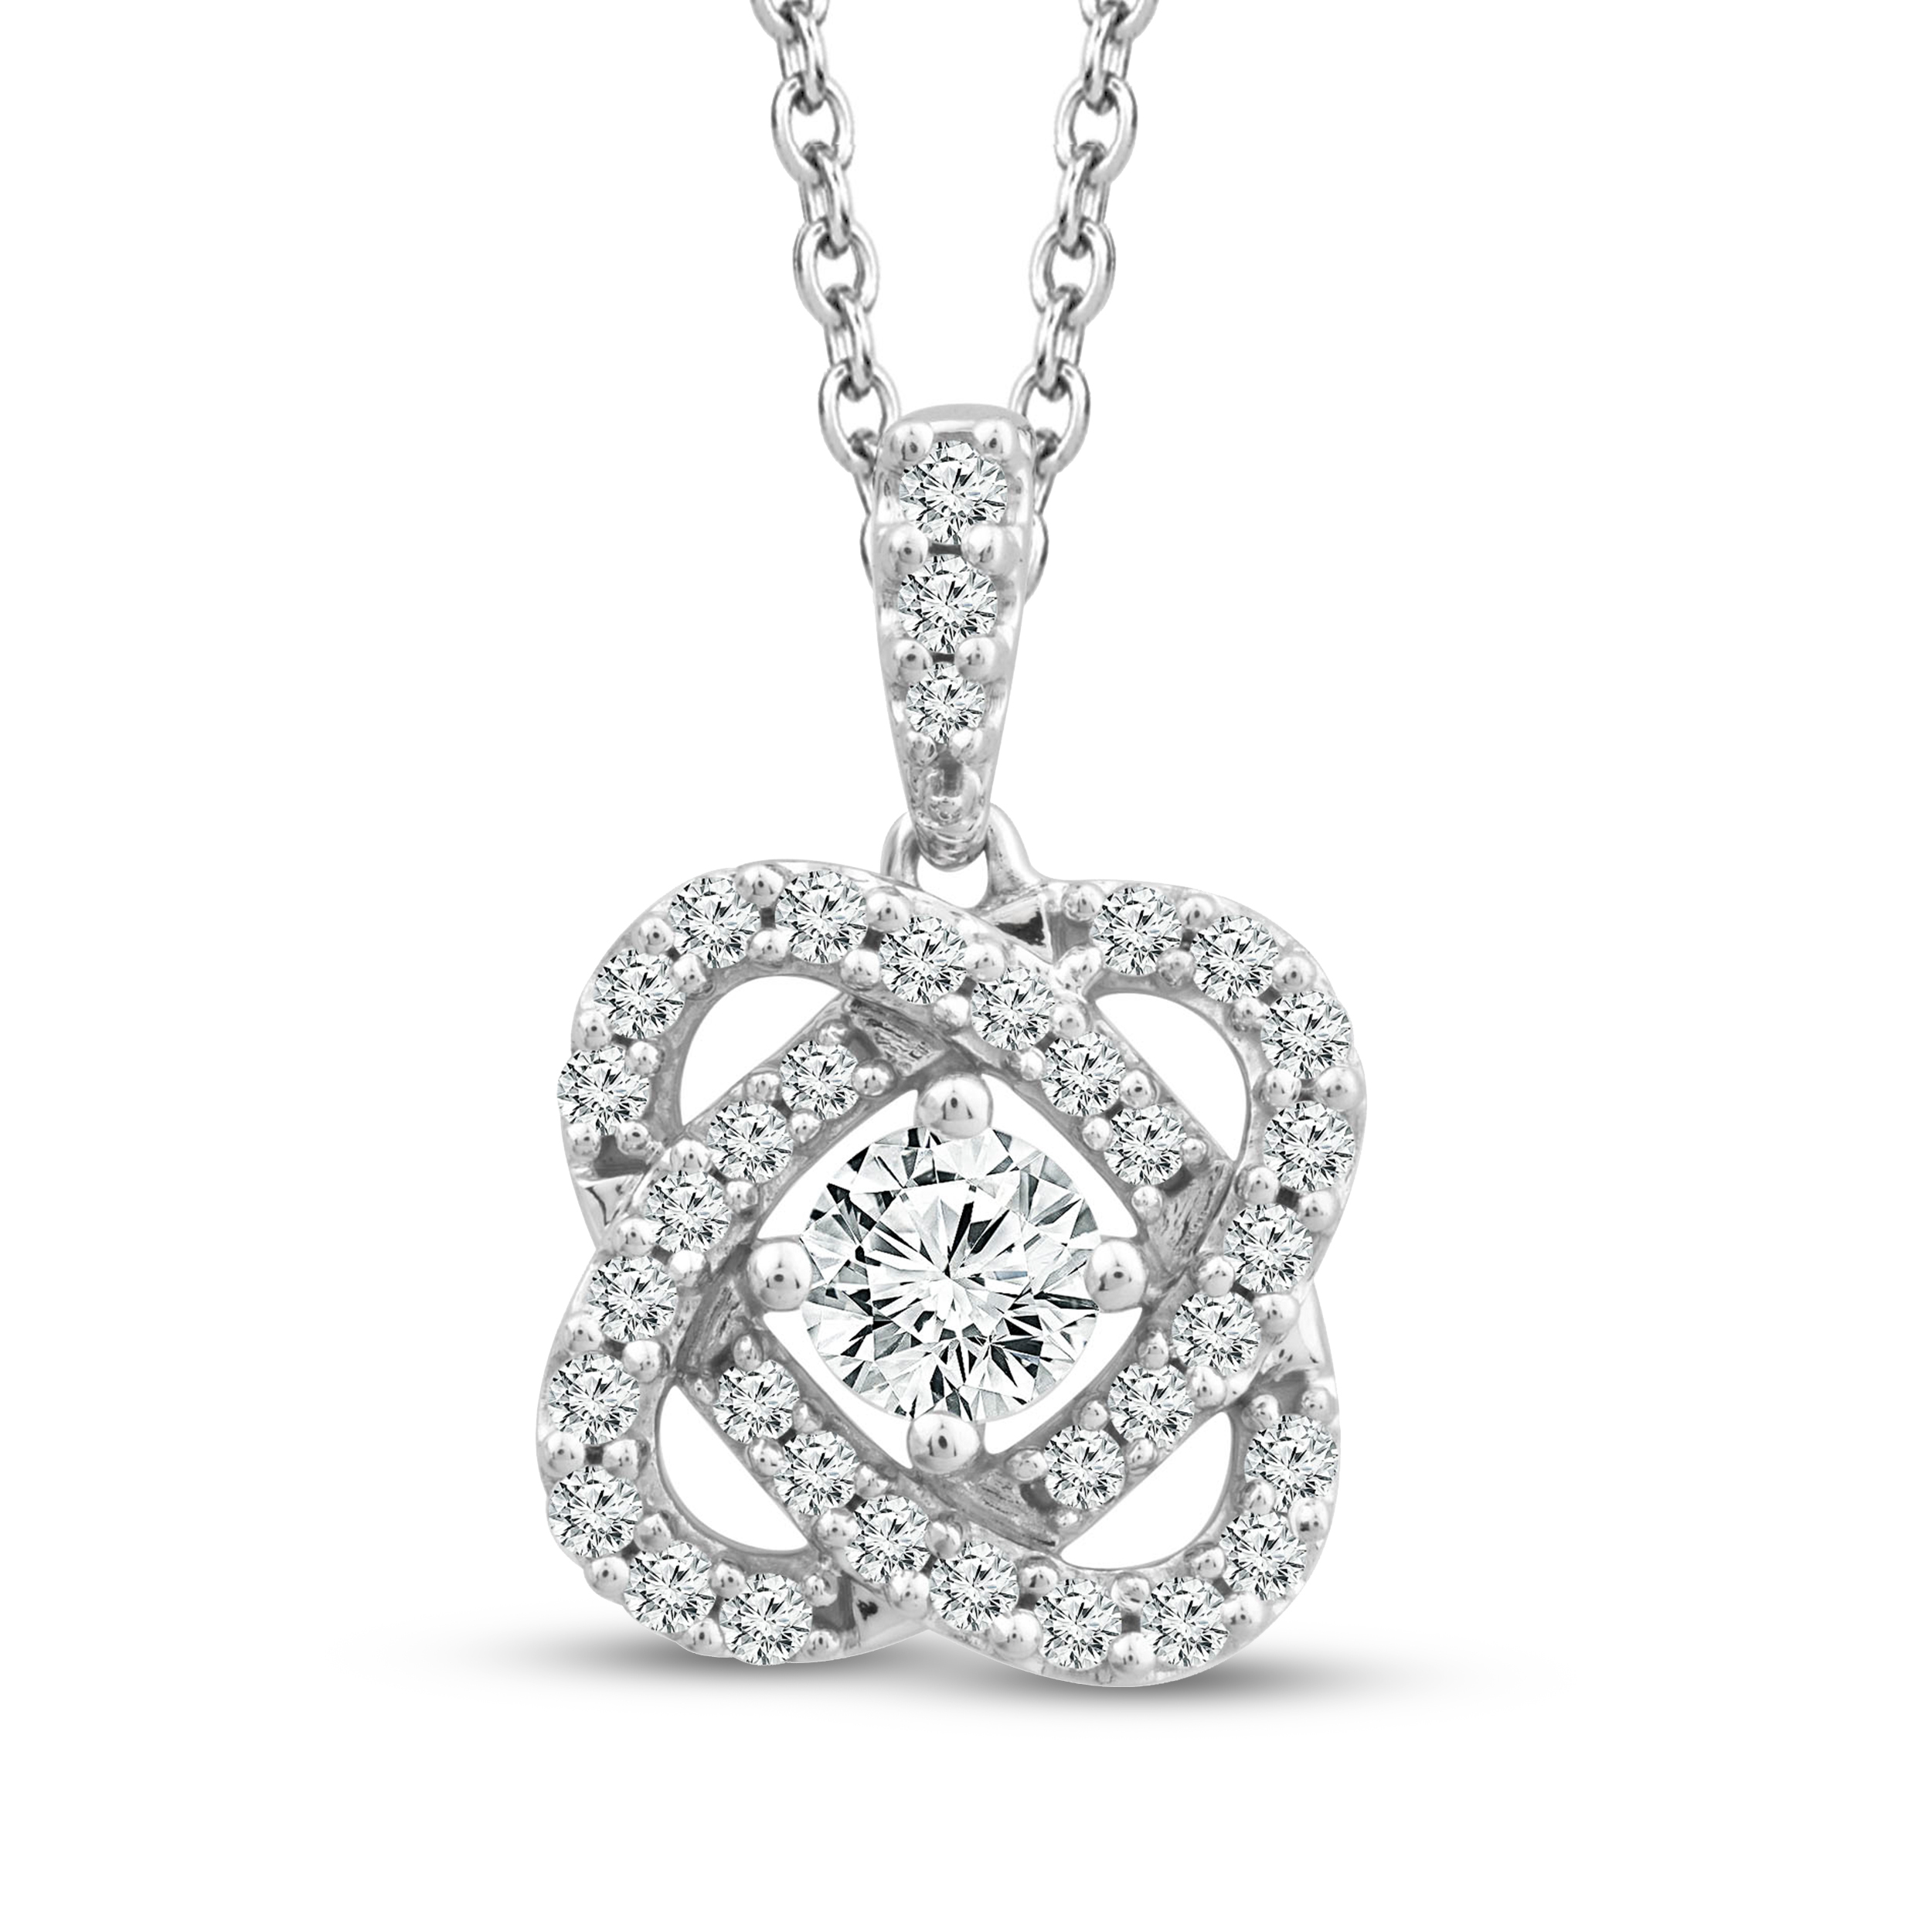 Kay Jewelers Debuts Center Of Me Collection Business Wire